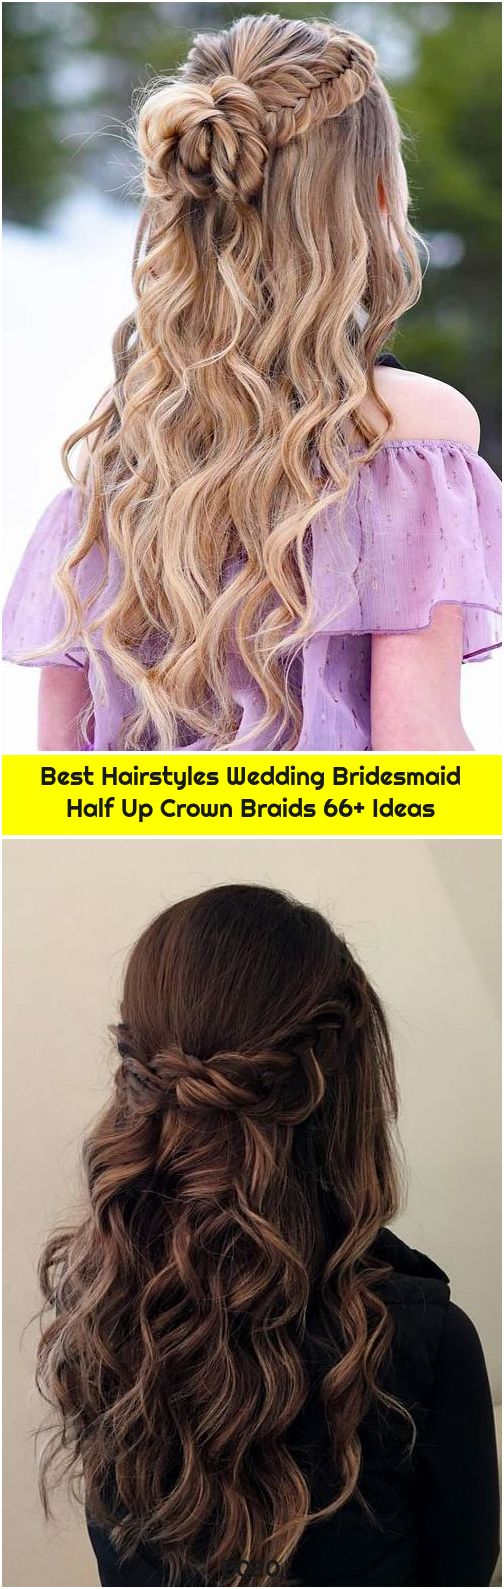 Best Hairstyles Wedding Bridesmaid Half Up Crown Braids 66+ Ideas